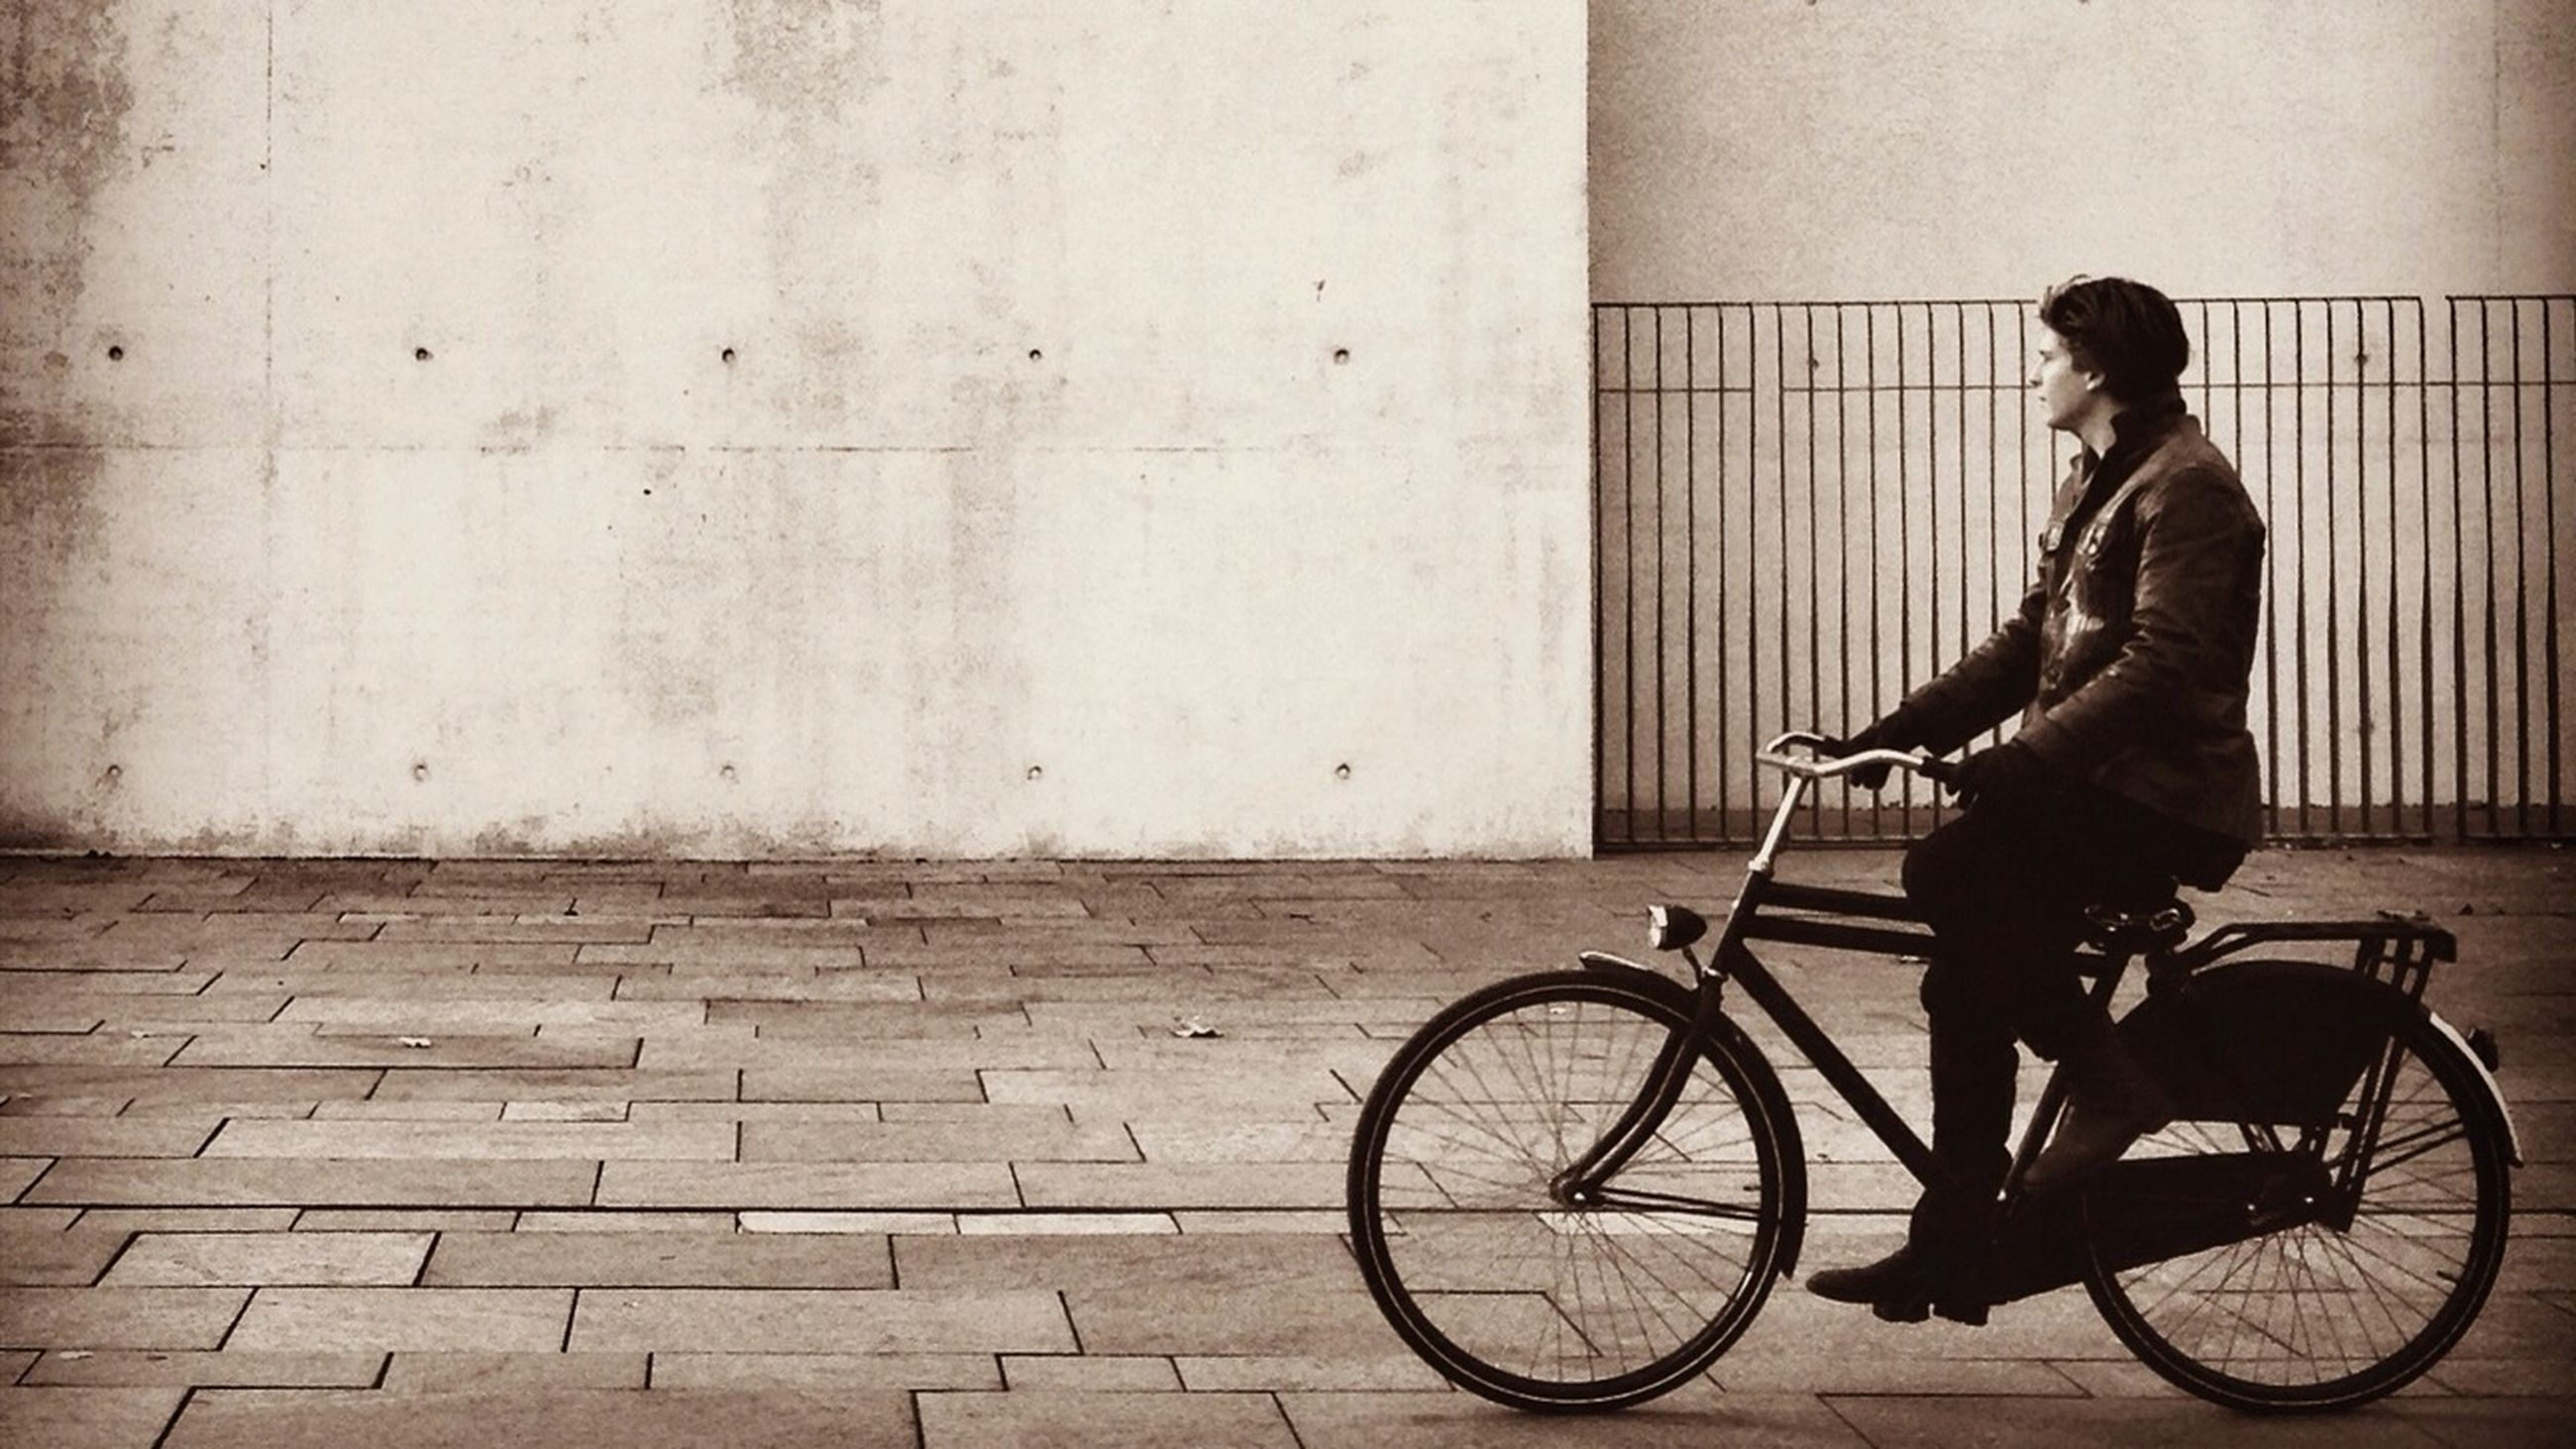 bicycle, mode of transport, transportation, full length, land vehicle, lifestyles, architecture, riding, built structure, side view, casual clothing, leisure activity, building exterior, men, leaning, wall - building feature, wall, stationary